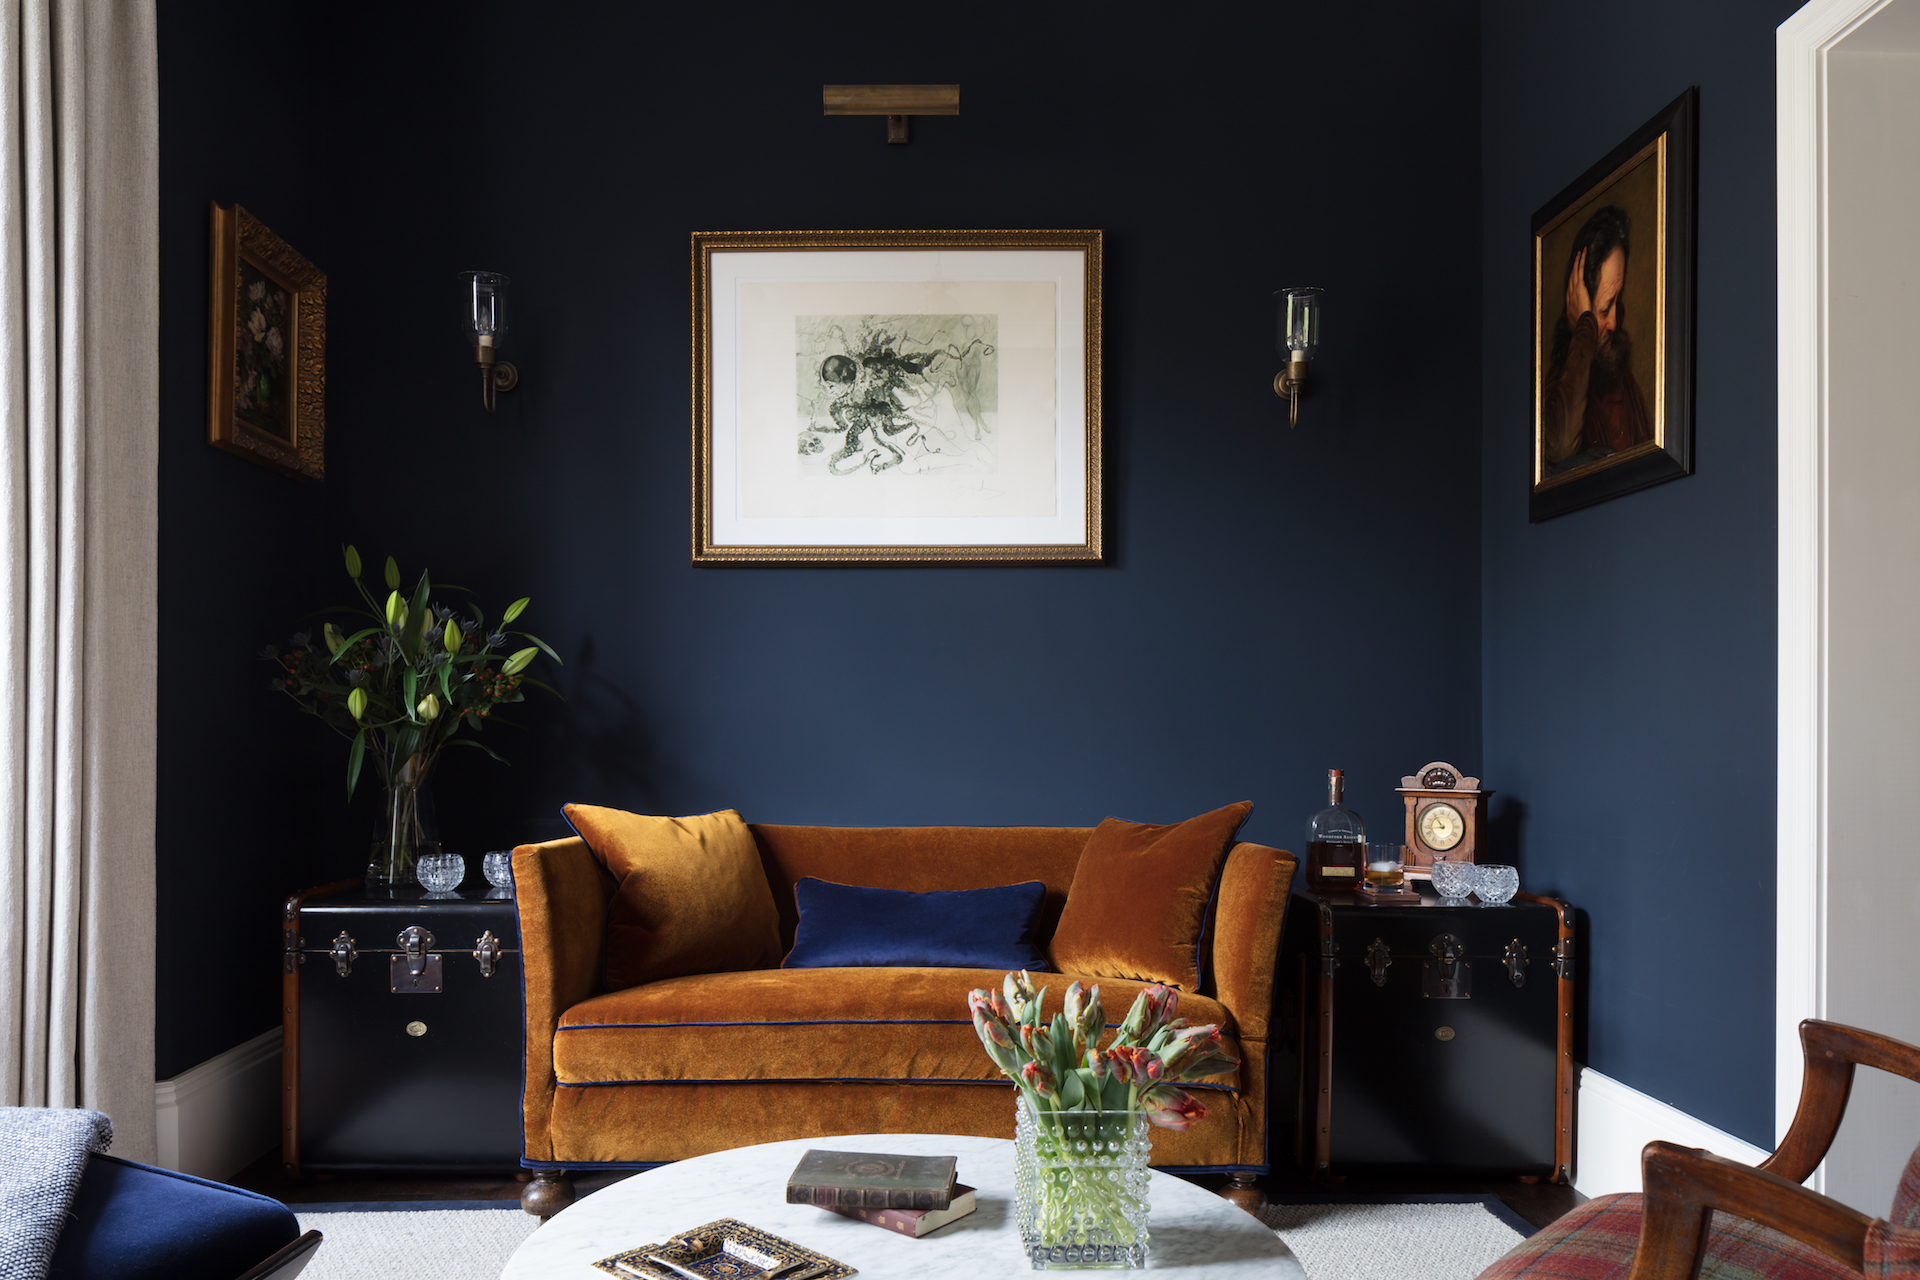 emma-collins-interiors-blackheath-project-humphrey-munson-1